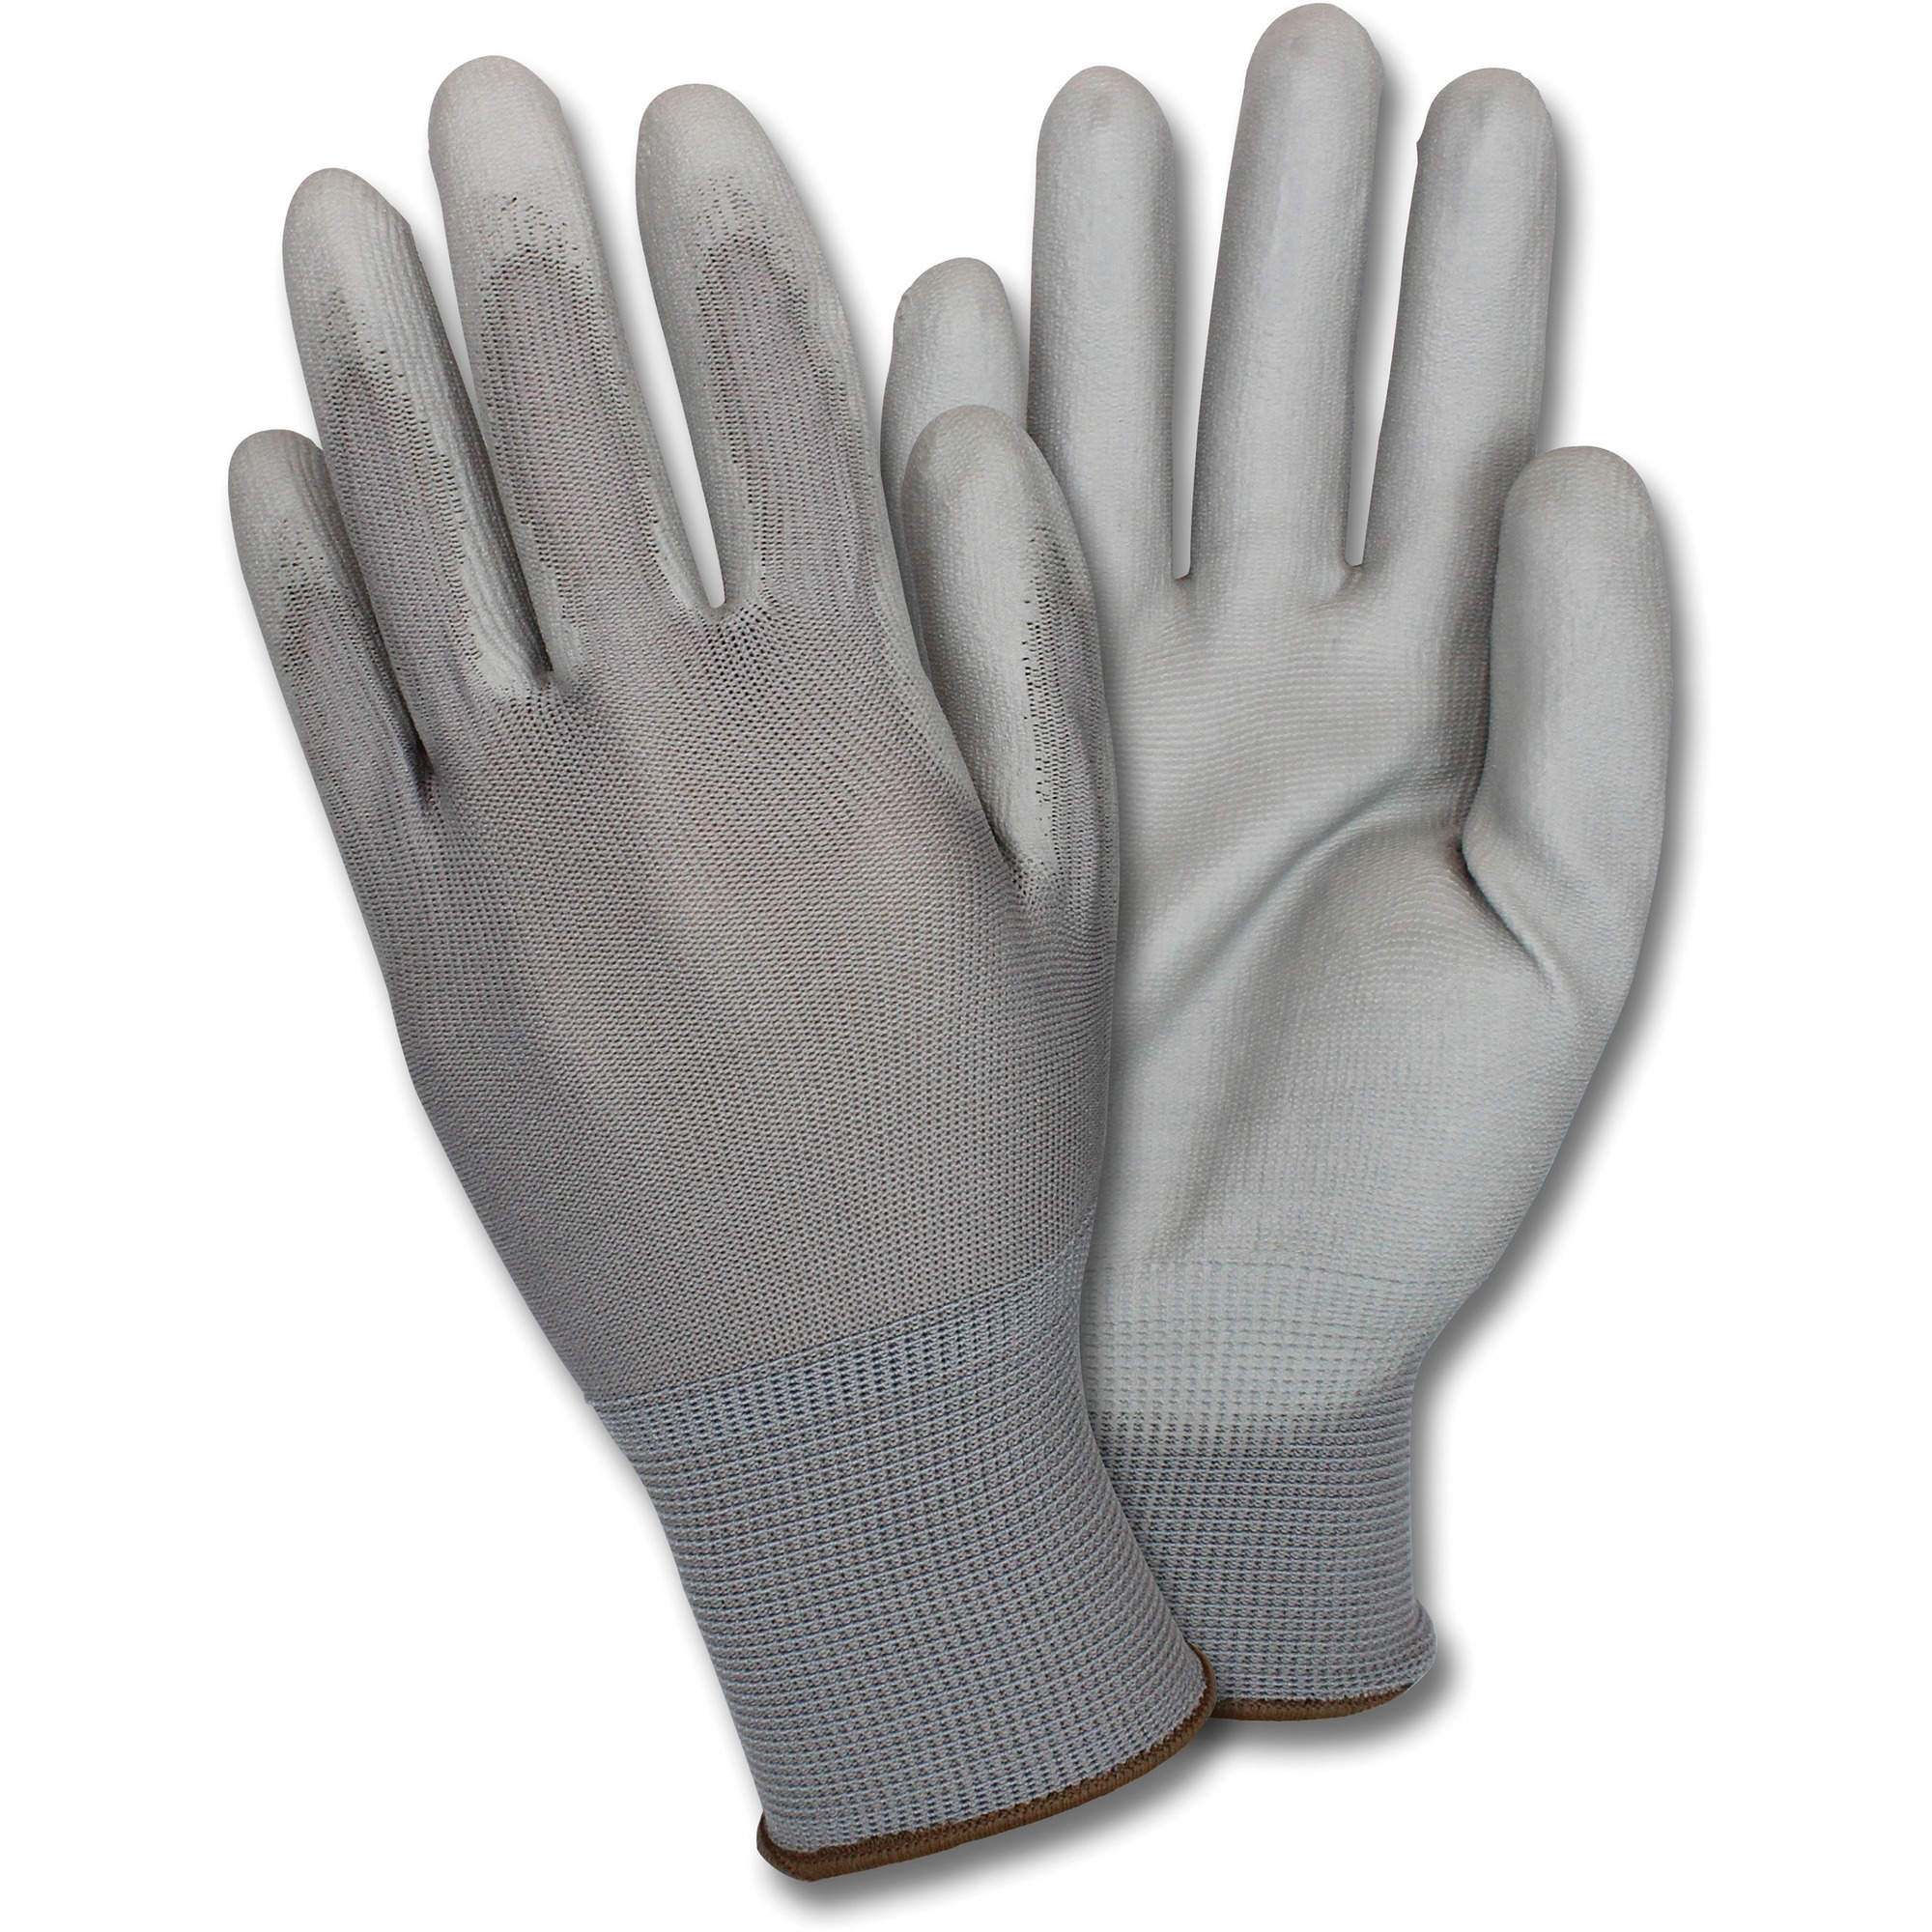 Safety Zone Poly Coated Knit Gloves - Polyurethane Coating - X-Large Size - Nylon - Gray - Flexible, Comfortable, Breathable, Lightweight, Knitted - For Industrial, Maintenance, Transportation, Warehouse, Construction, Assembling, Gardening - 12 / Dozen